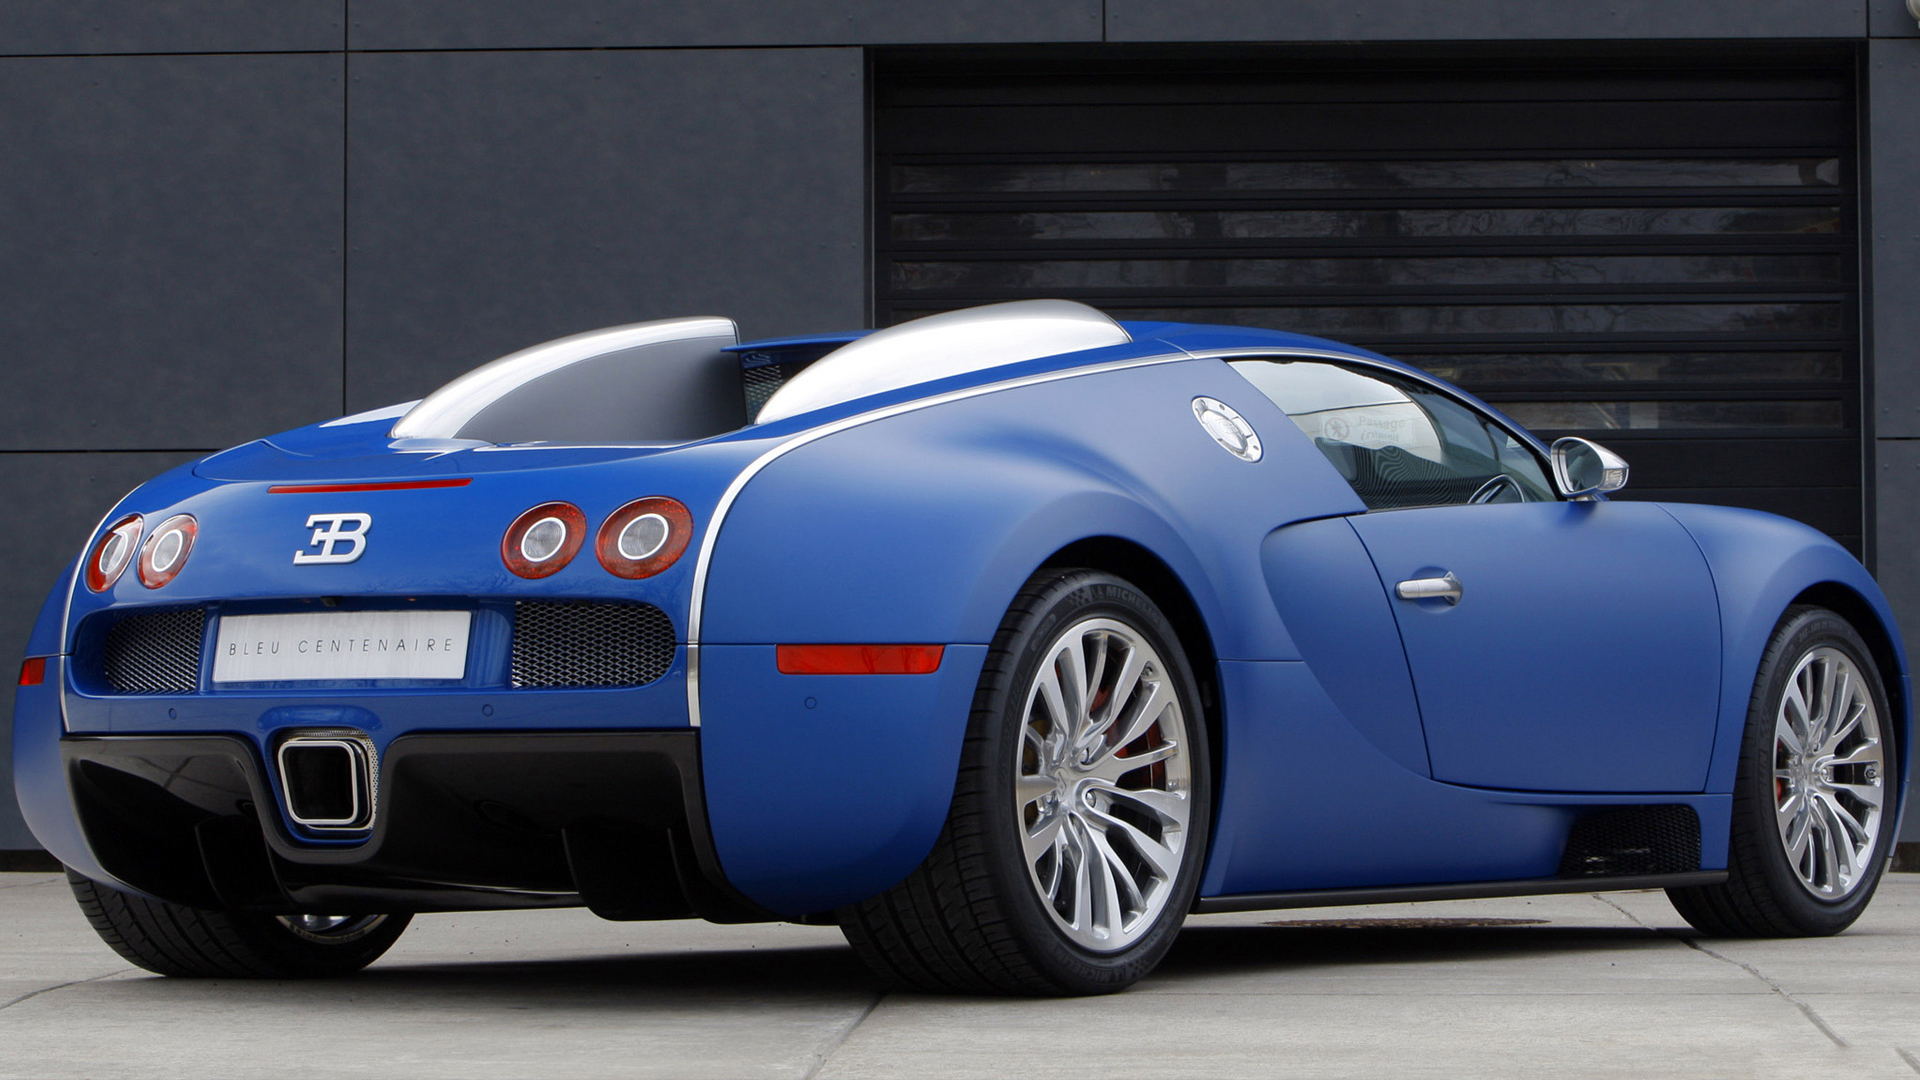 bugatti veyron wallpaper 1080p - wallpapersafari